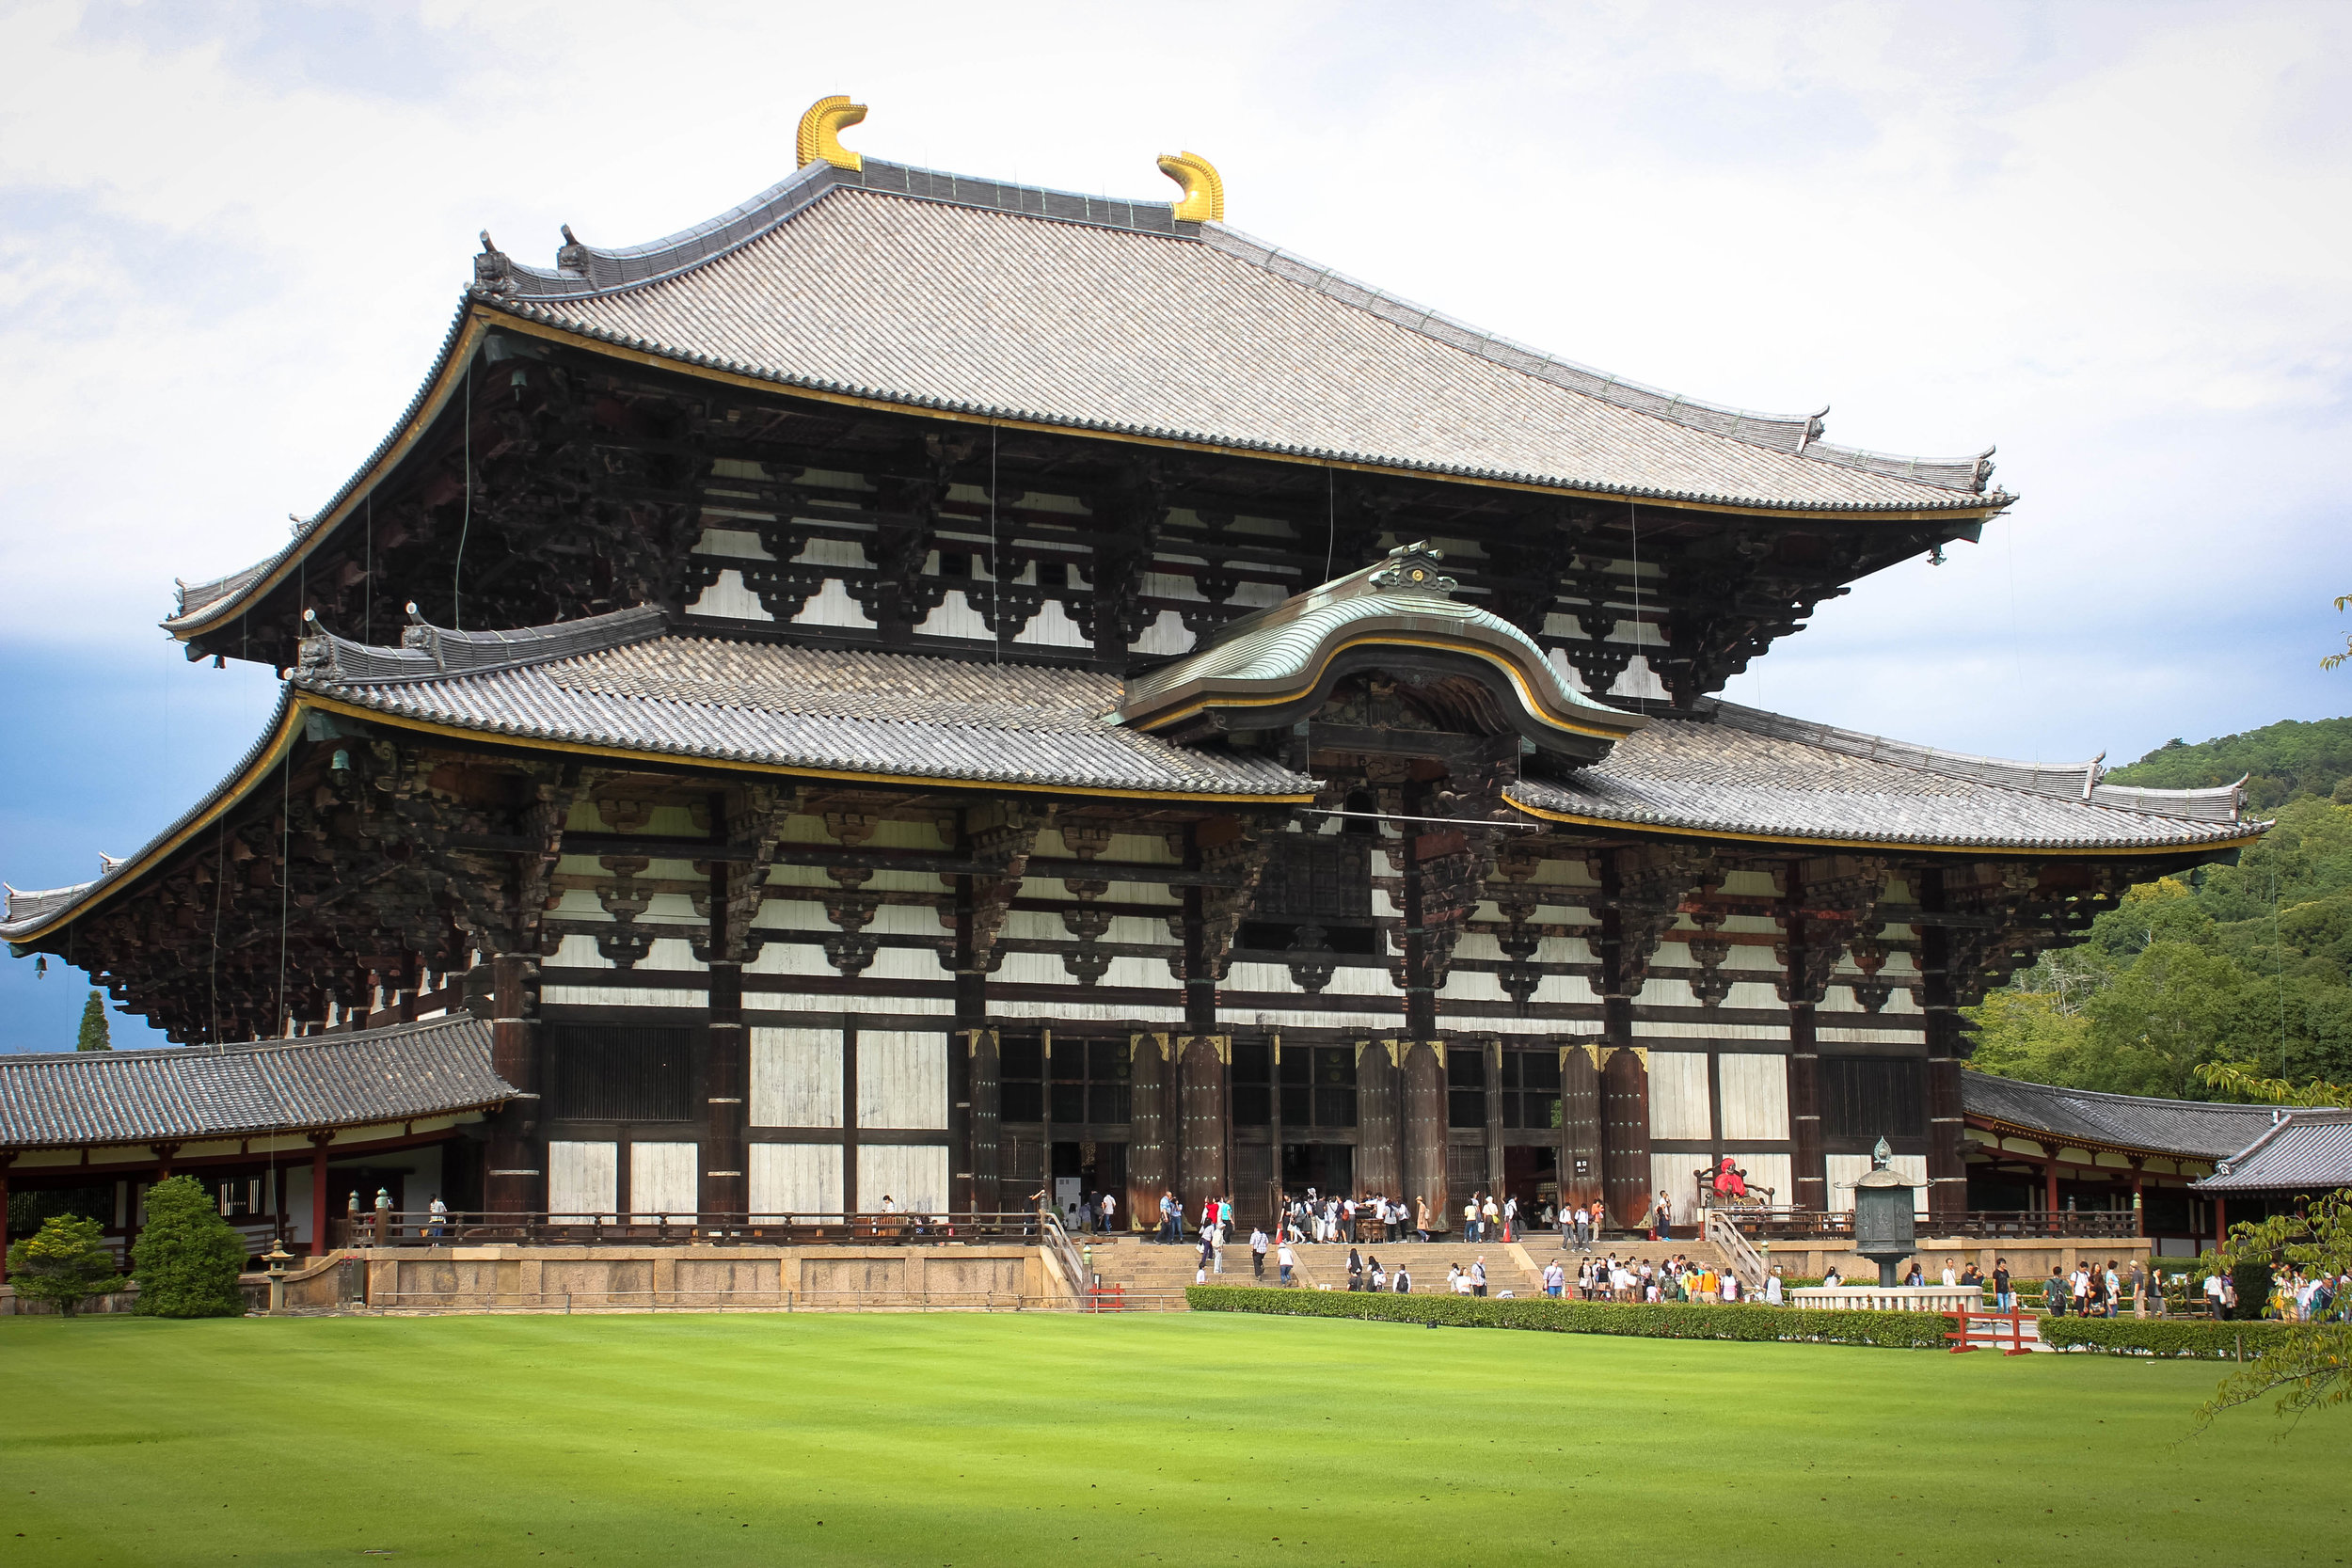 Todai-ji in Nara, housing inside the largest bronze statue of Buddha in the world.